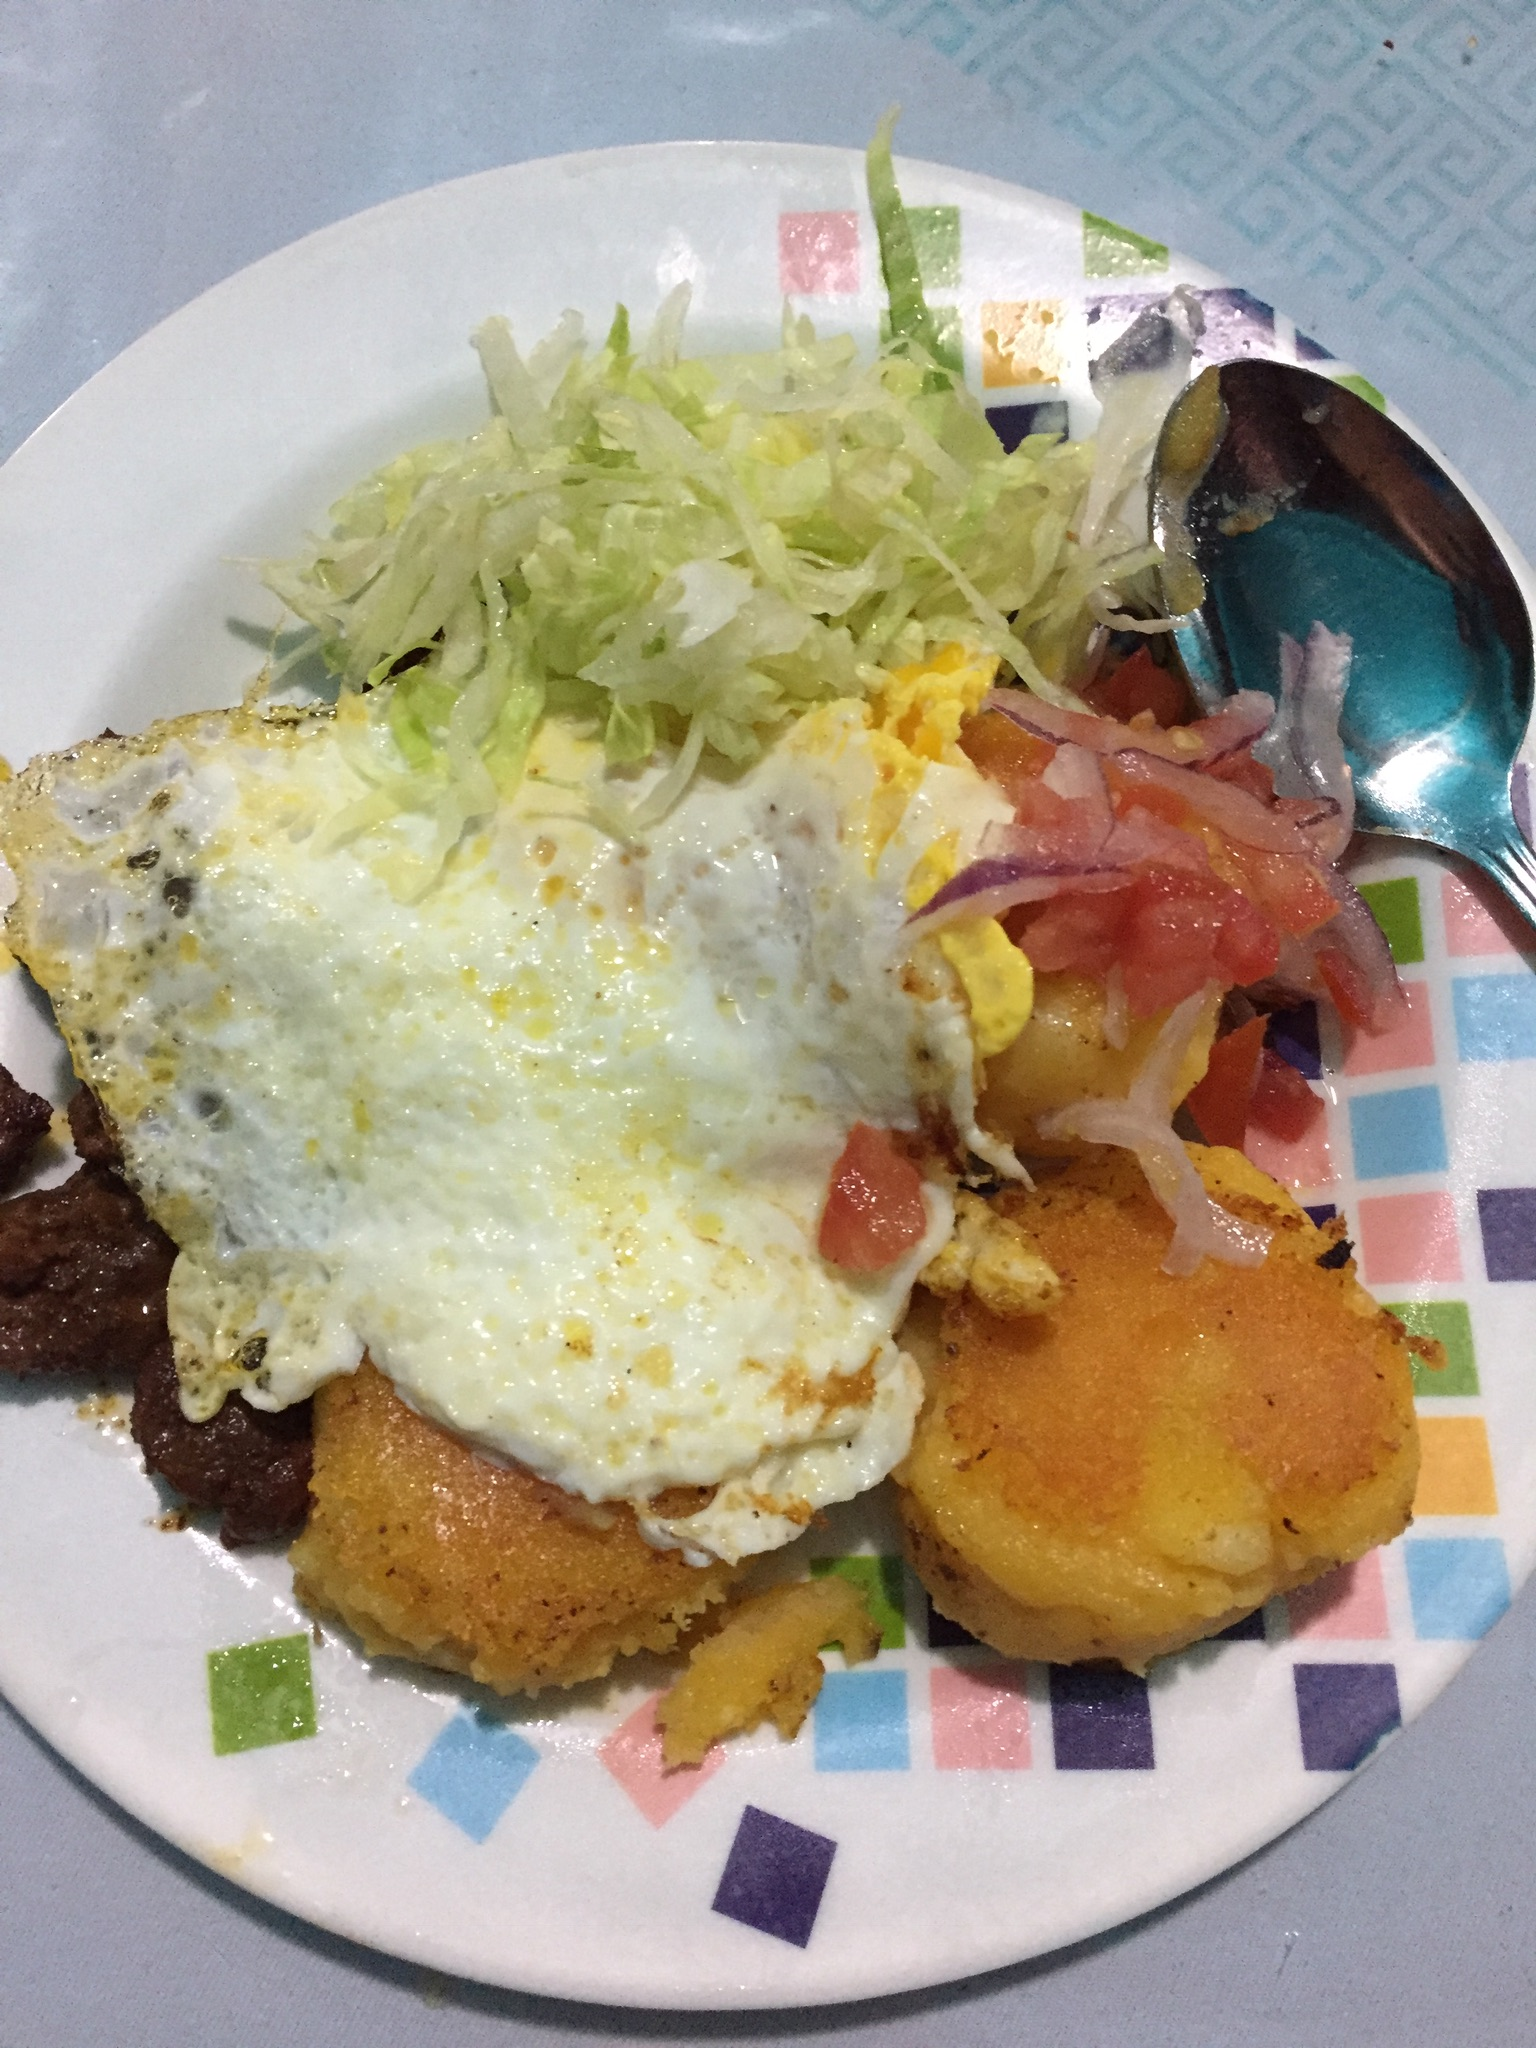 My dinner. Beef with fried smashed potatoes, red onion and tomato salad, and a fried egg.